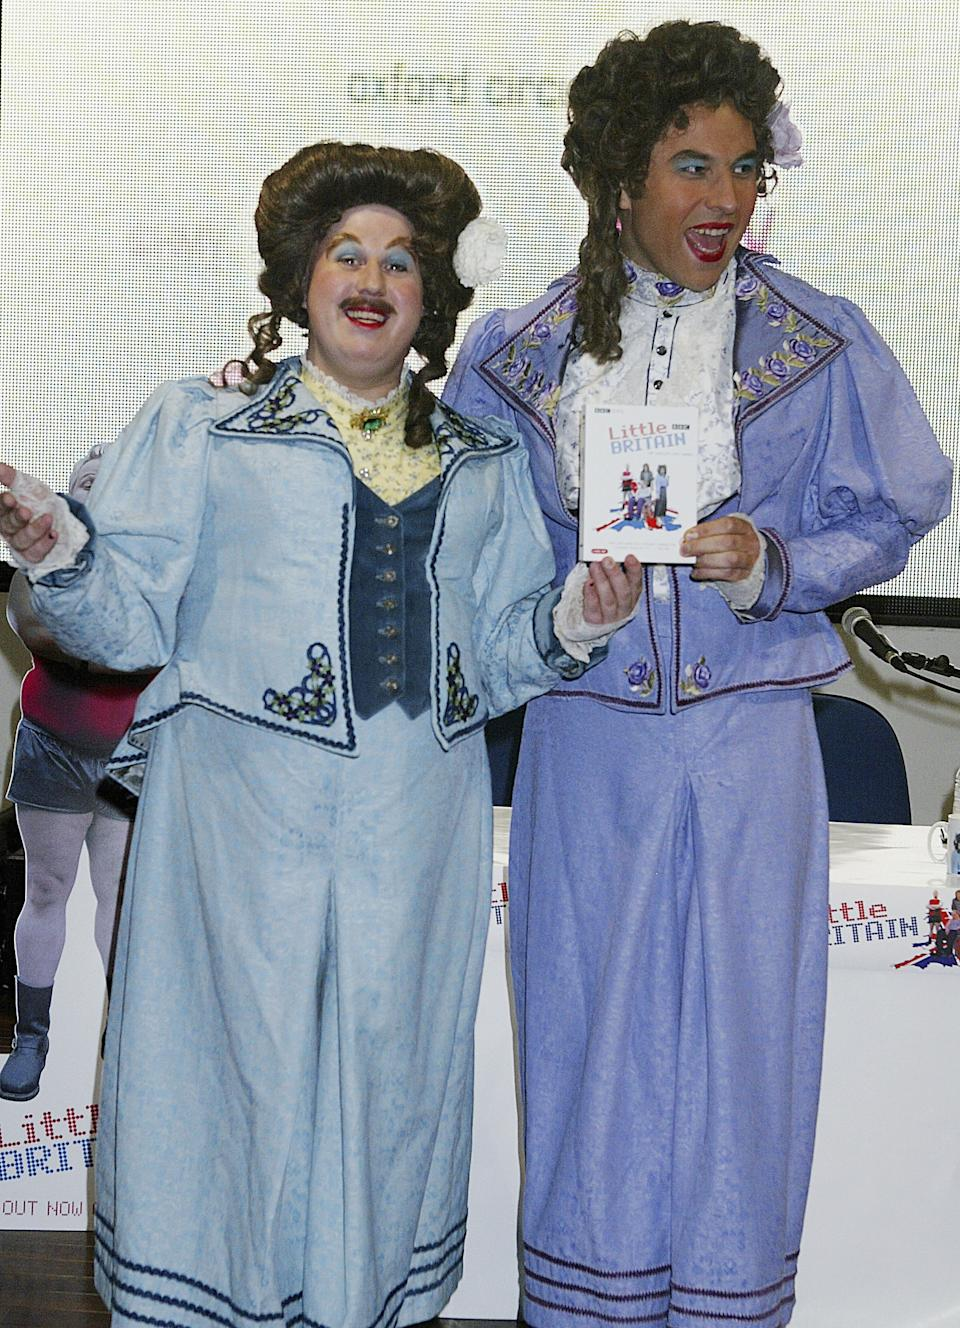 Matt Lucas and David Walliams played ethnic minority characters on their shows as well as members of other marginalised groups. (Photo by Jo Hale/Getty Images)